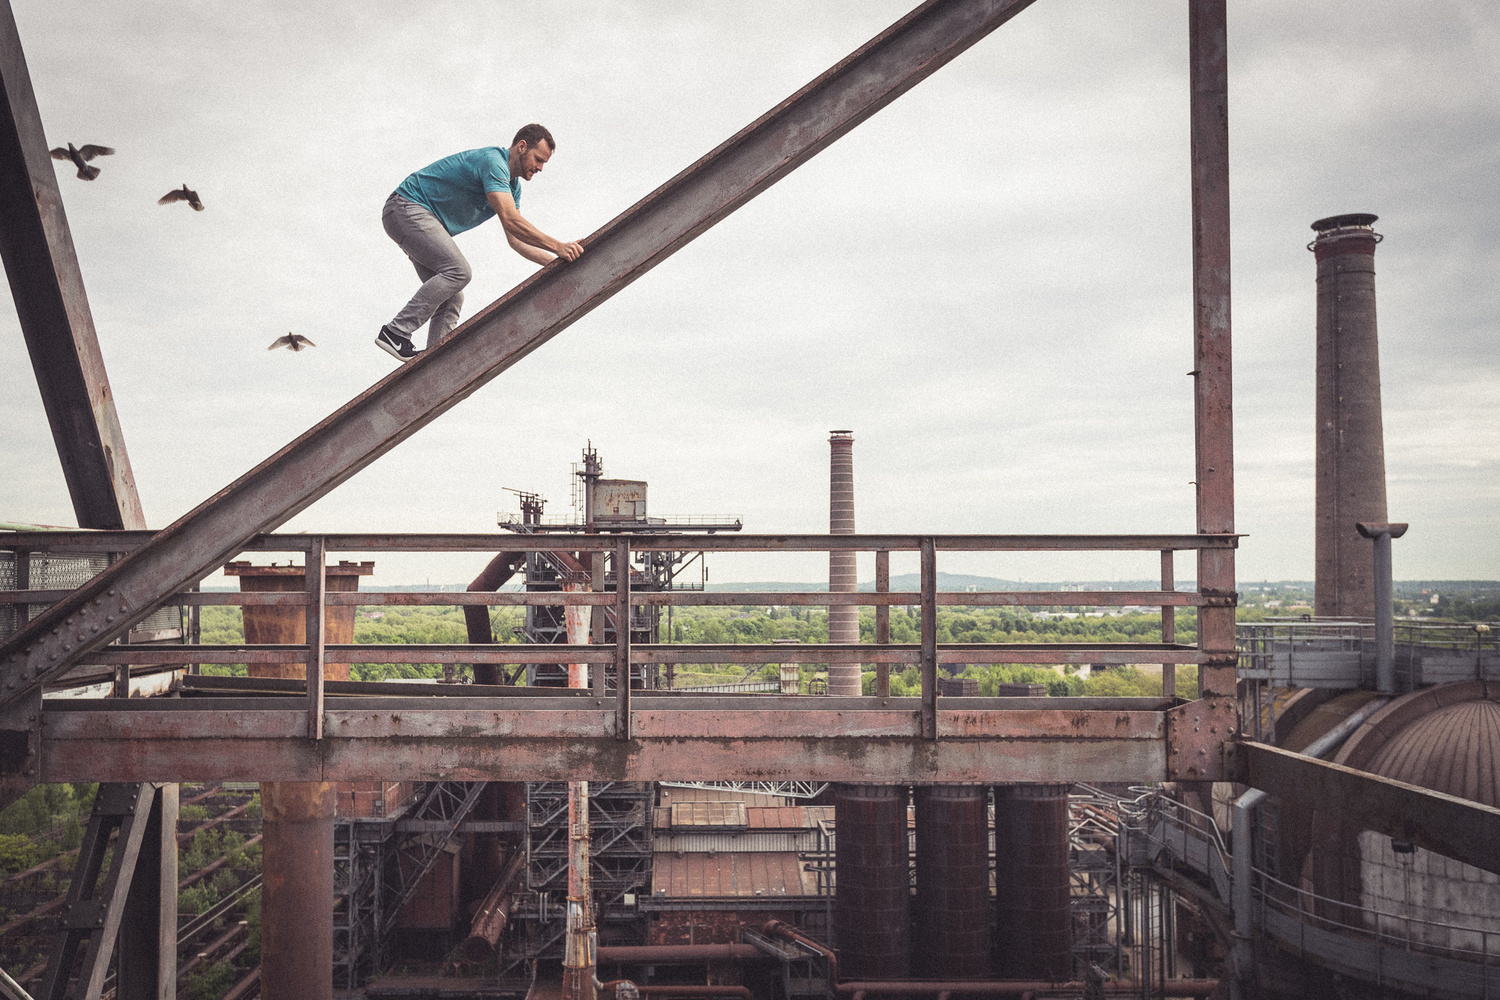 Landschaftspark Duisburg-Nord by Andy Day